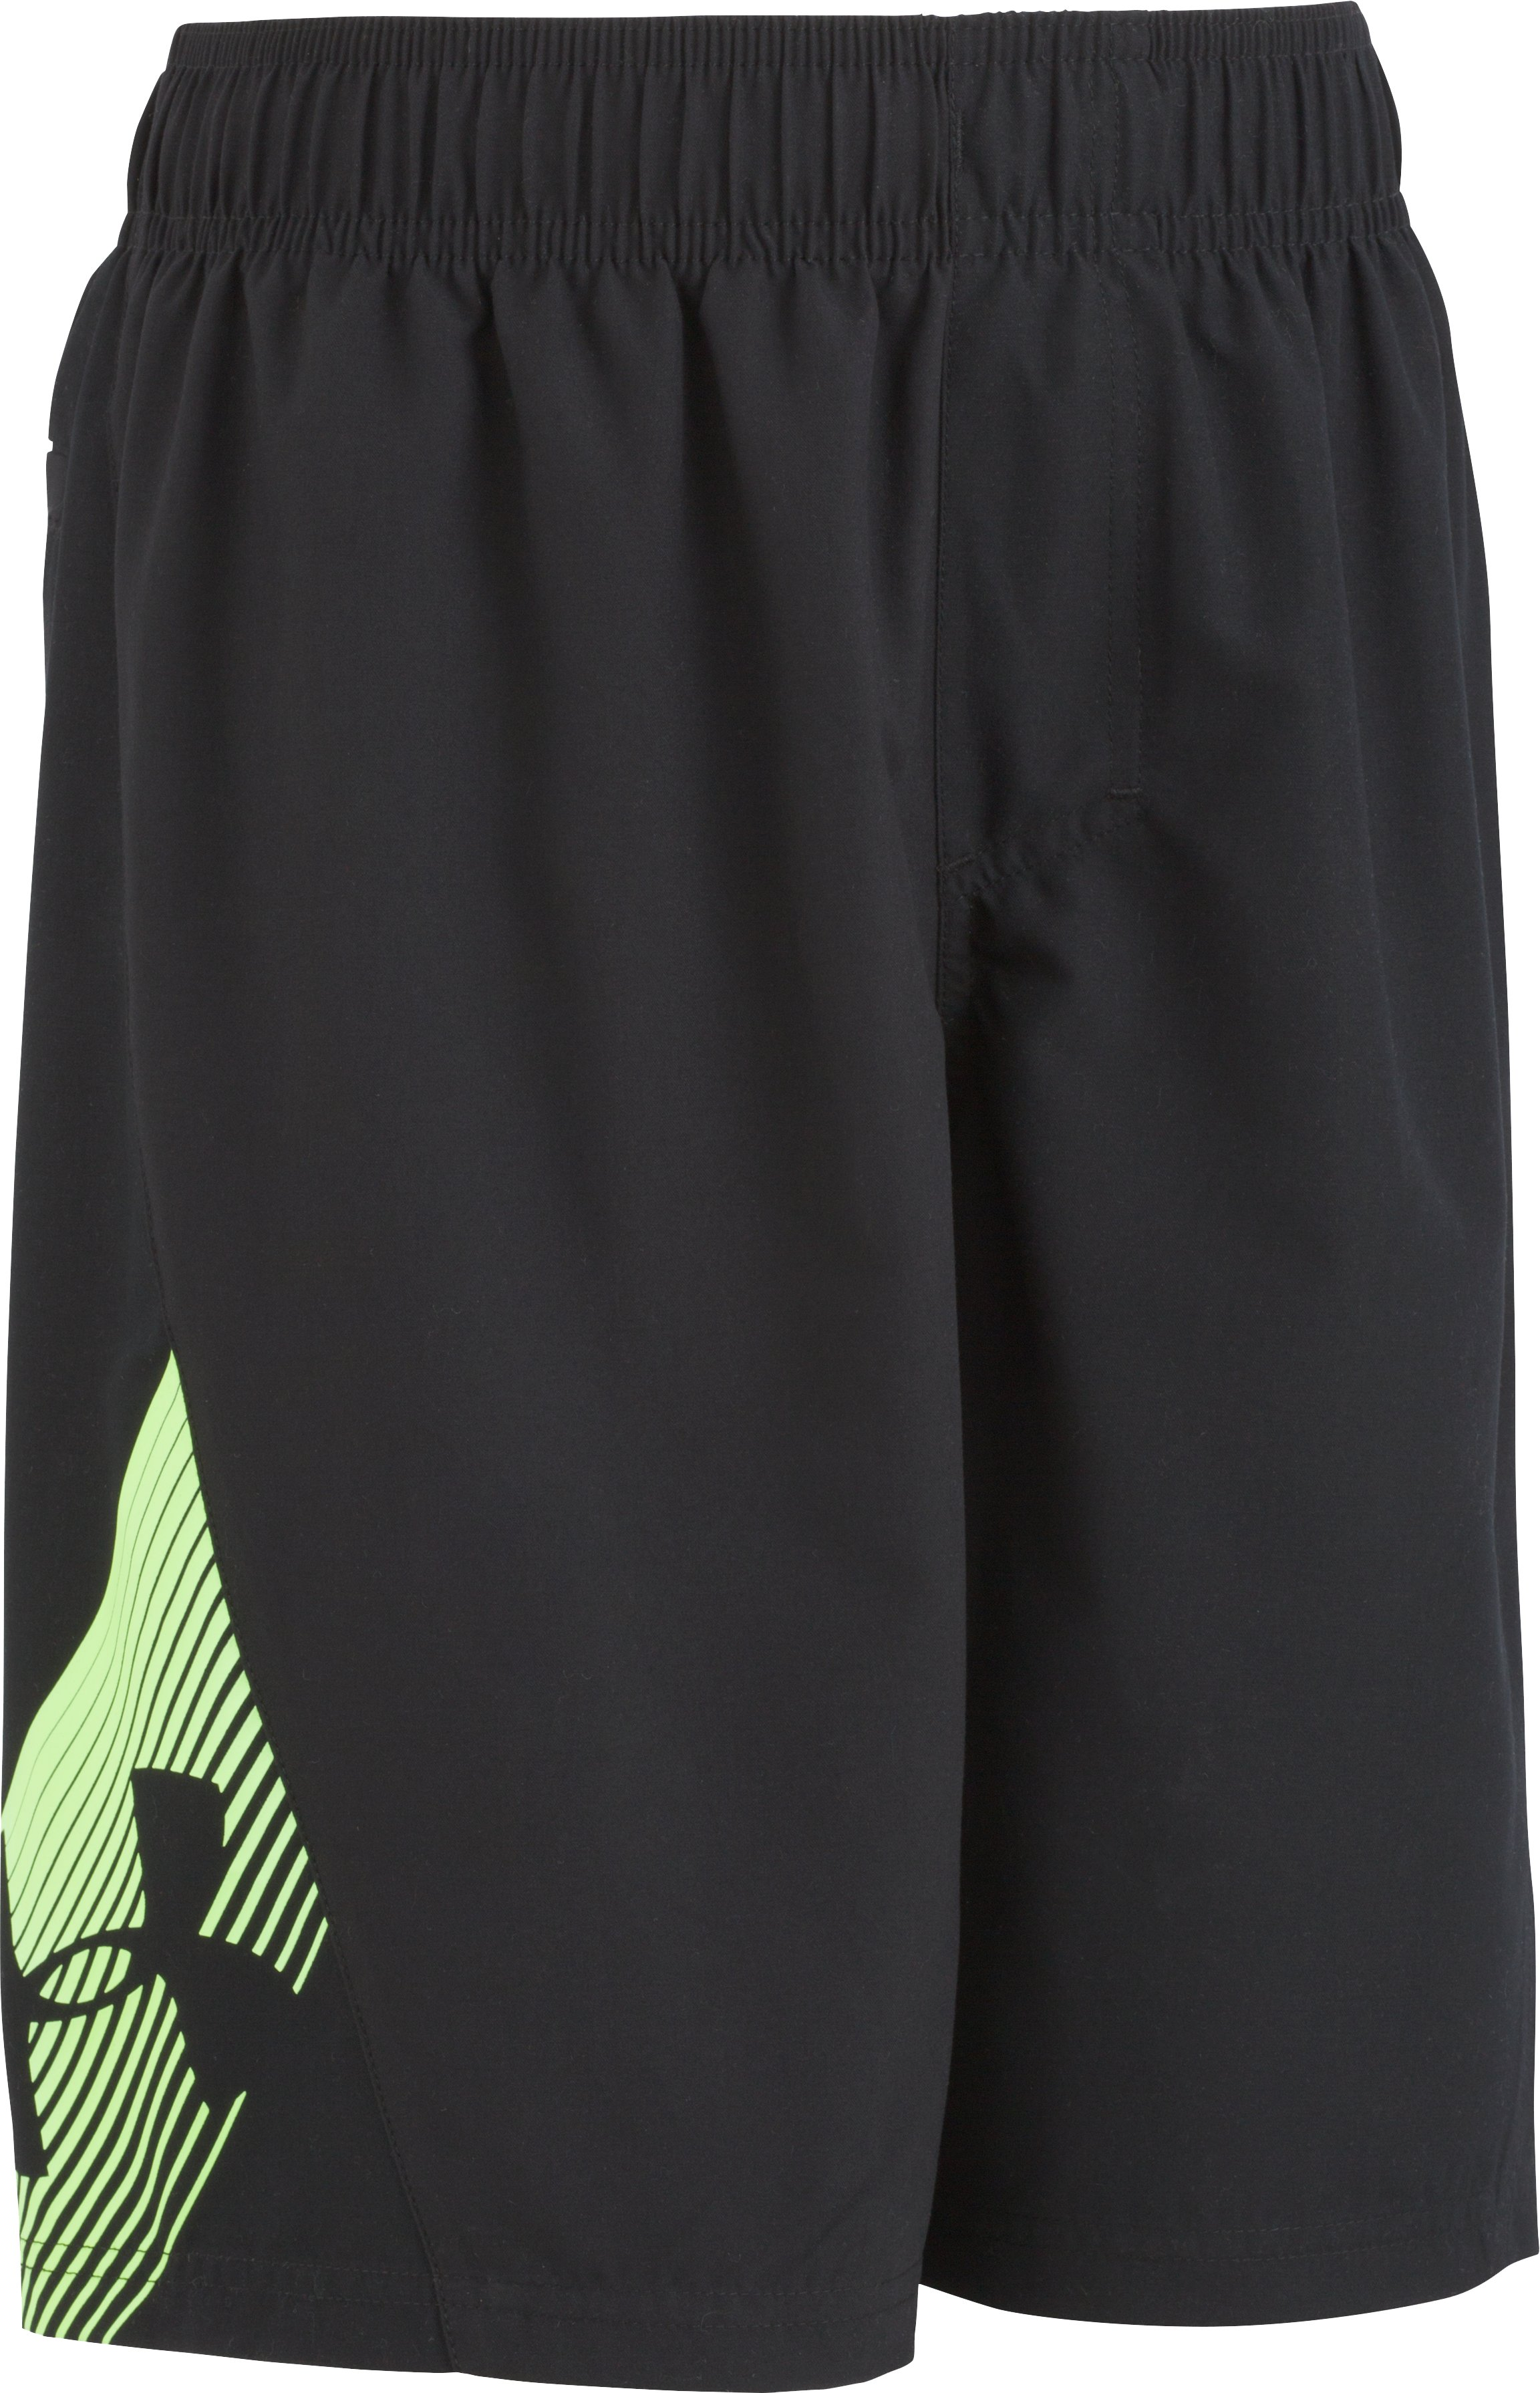 Boys' UA Slash Volley Shorts, Black , Laydown